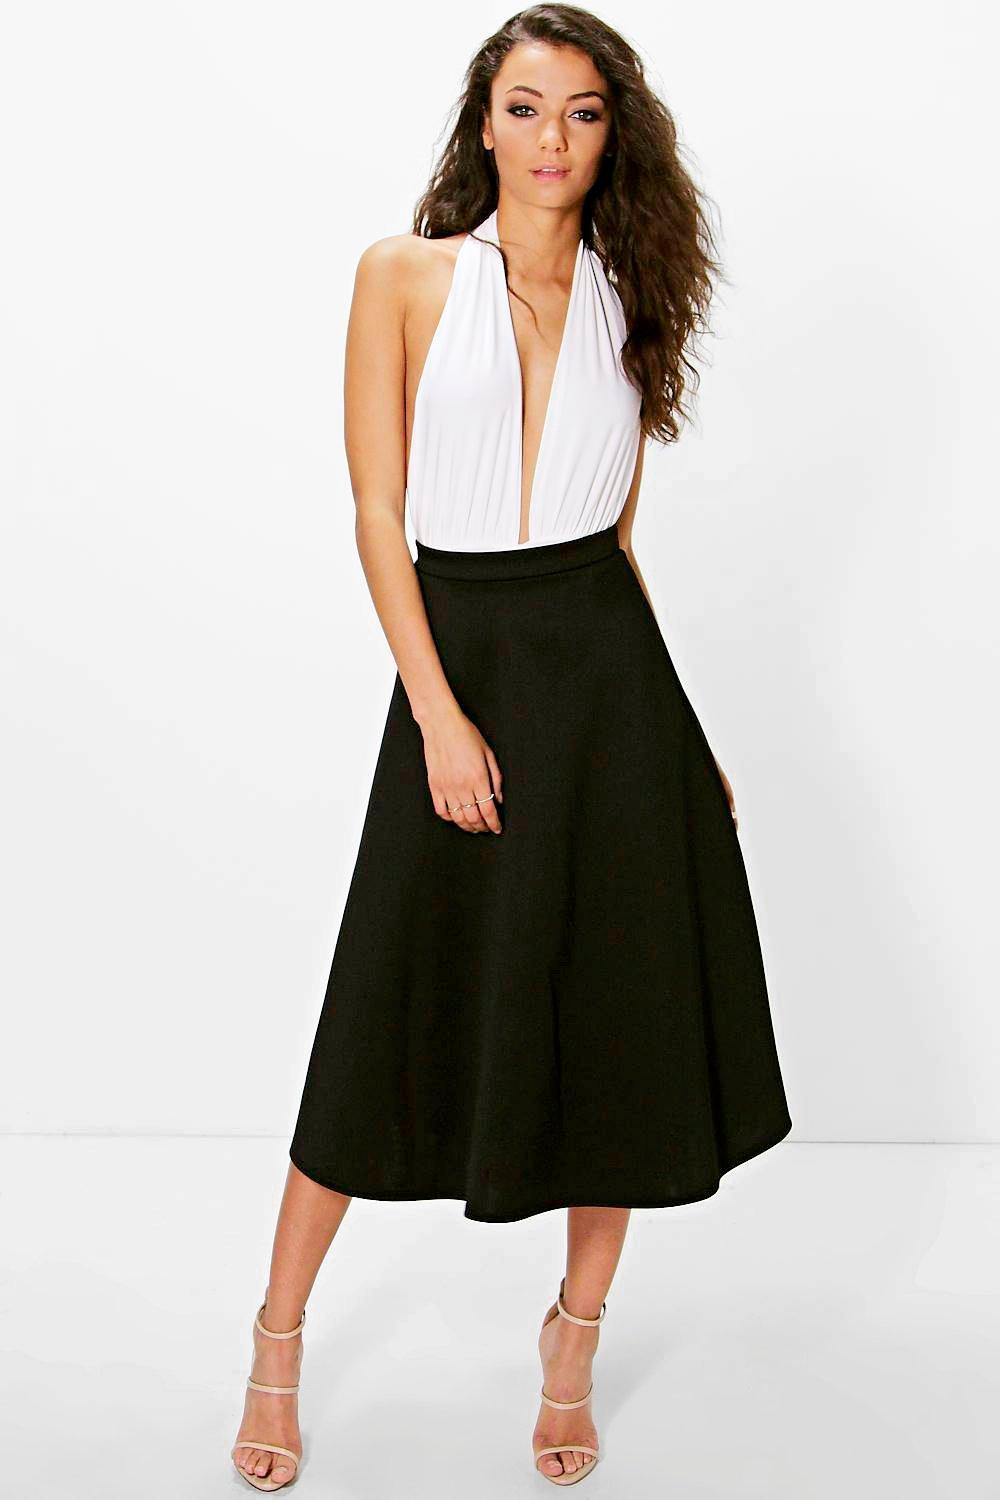 Sammydress offers a gorgeous selection of affordable and unique clothing,shoes, bags, beauty and accessories. Get your FREE $50 now: click here to get started.